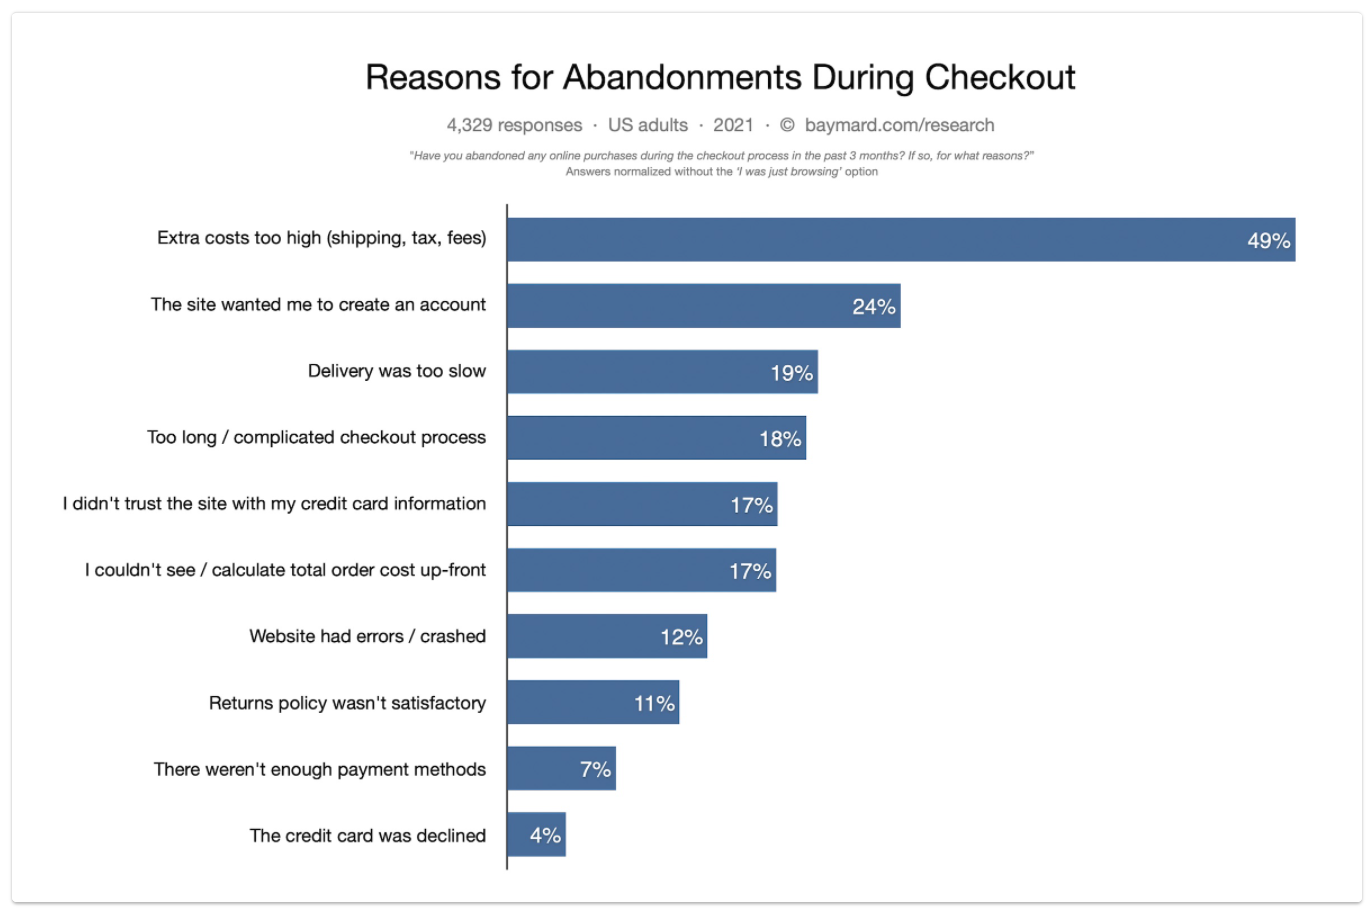 Chart showing reasons for cart abandonment. The top reason with 49% of responses is extra costs are too high followed by mandated account creation or slow delivery